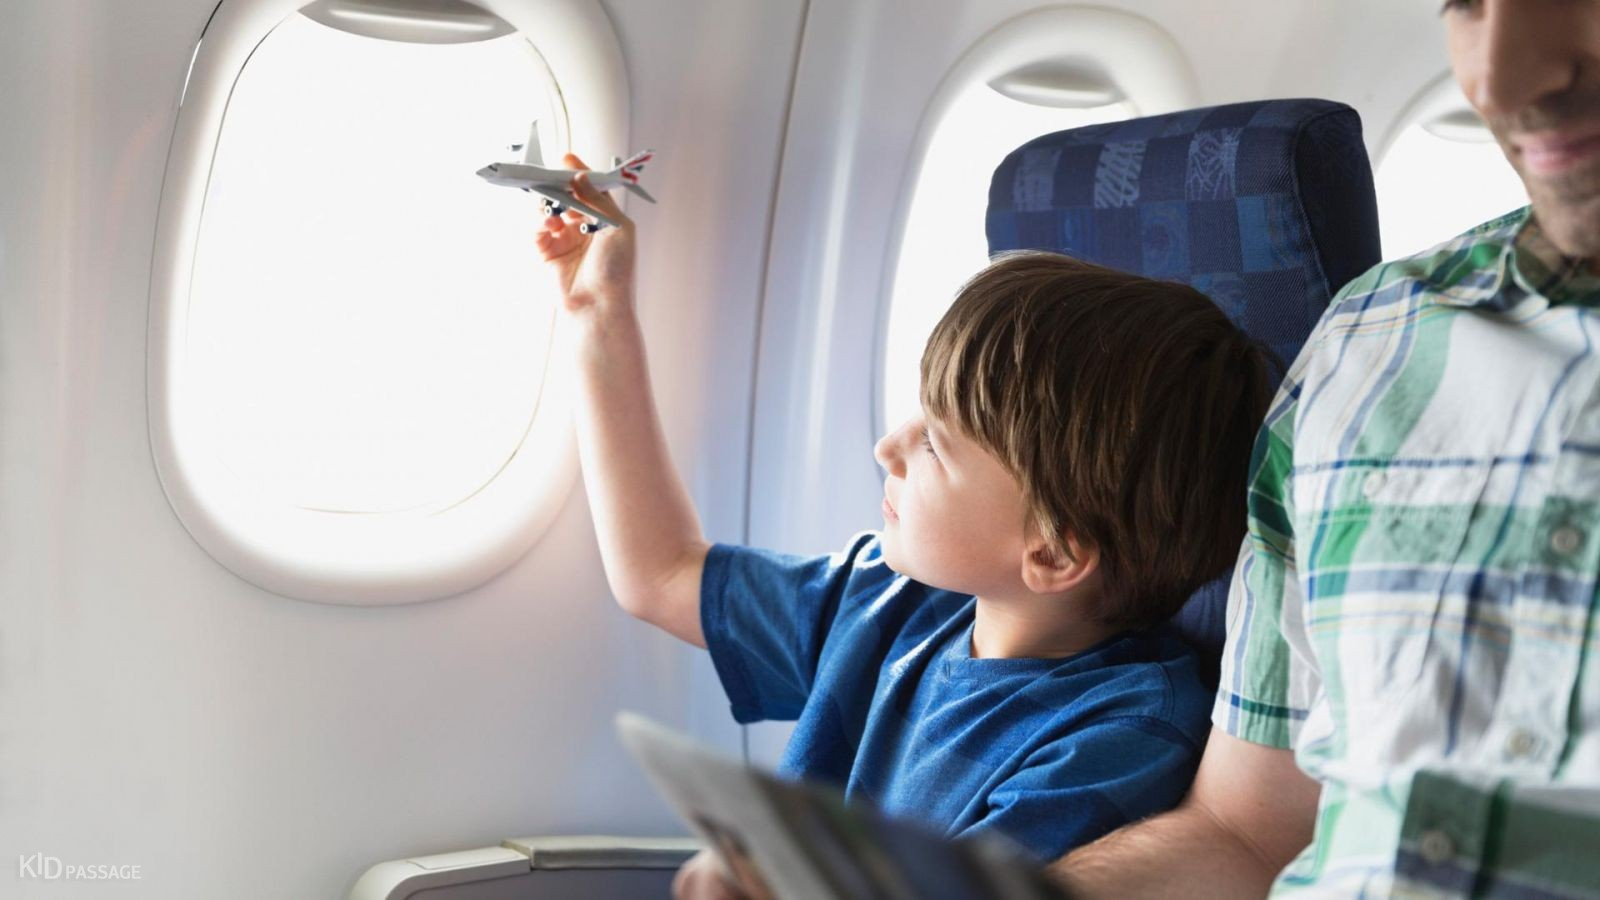 http://kidpassage.com/images/publications/images/1109_myths-about-flying-you-shouldnt-buy-into.jpg